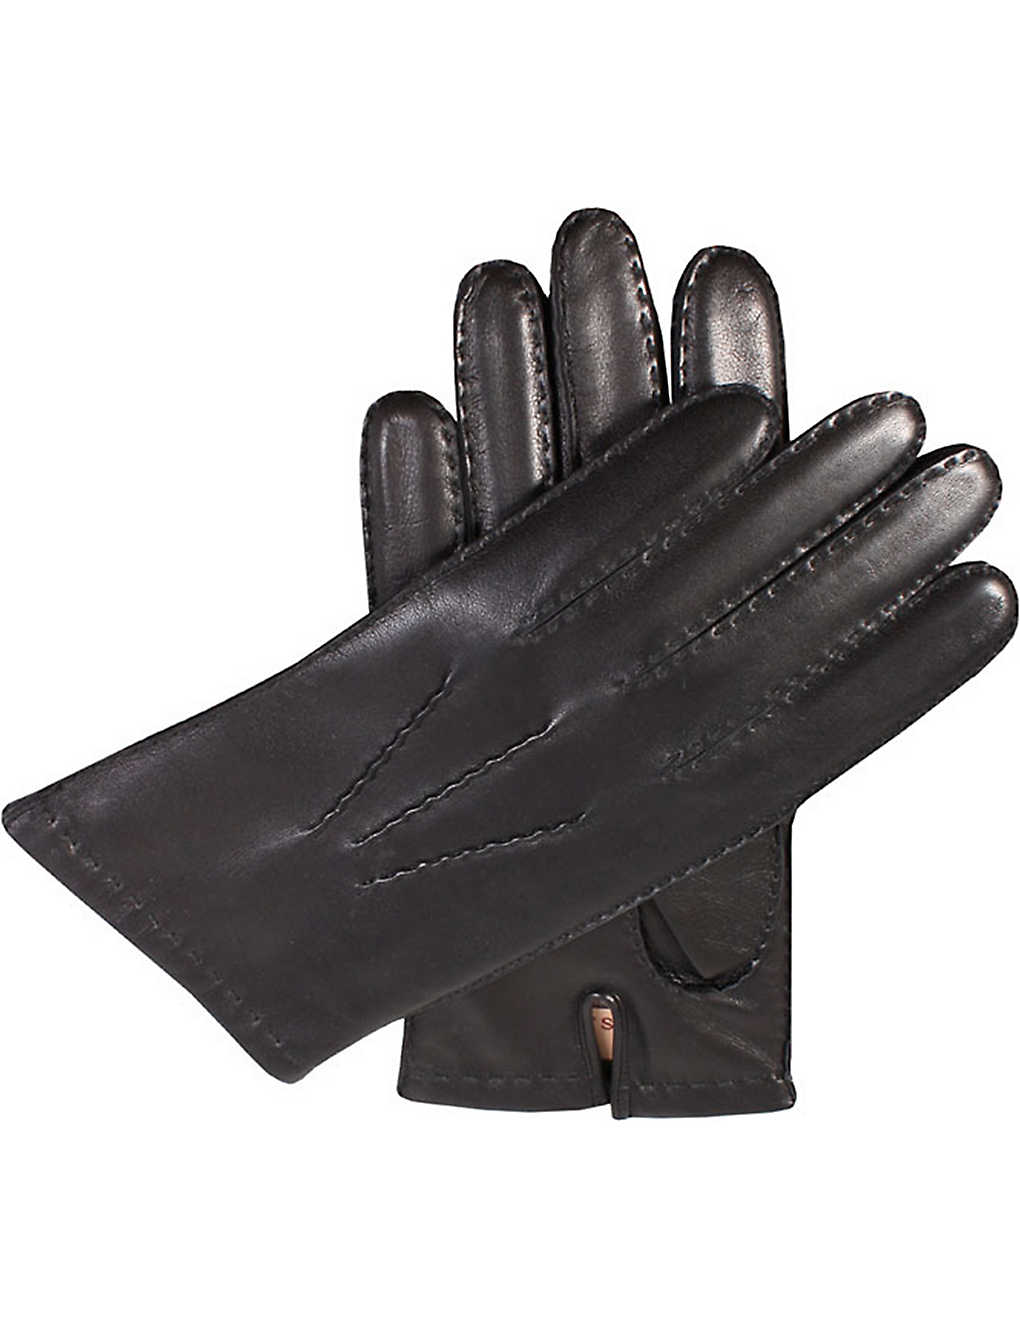 ee2ec8d52 DENTS - Cashmere-lined nappa-leather gloves | Selfridges.com